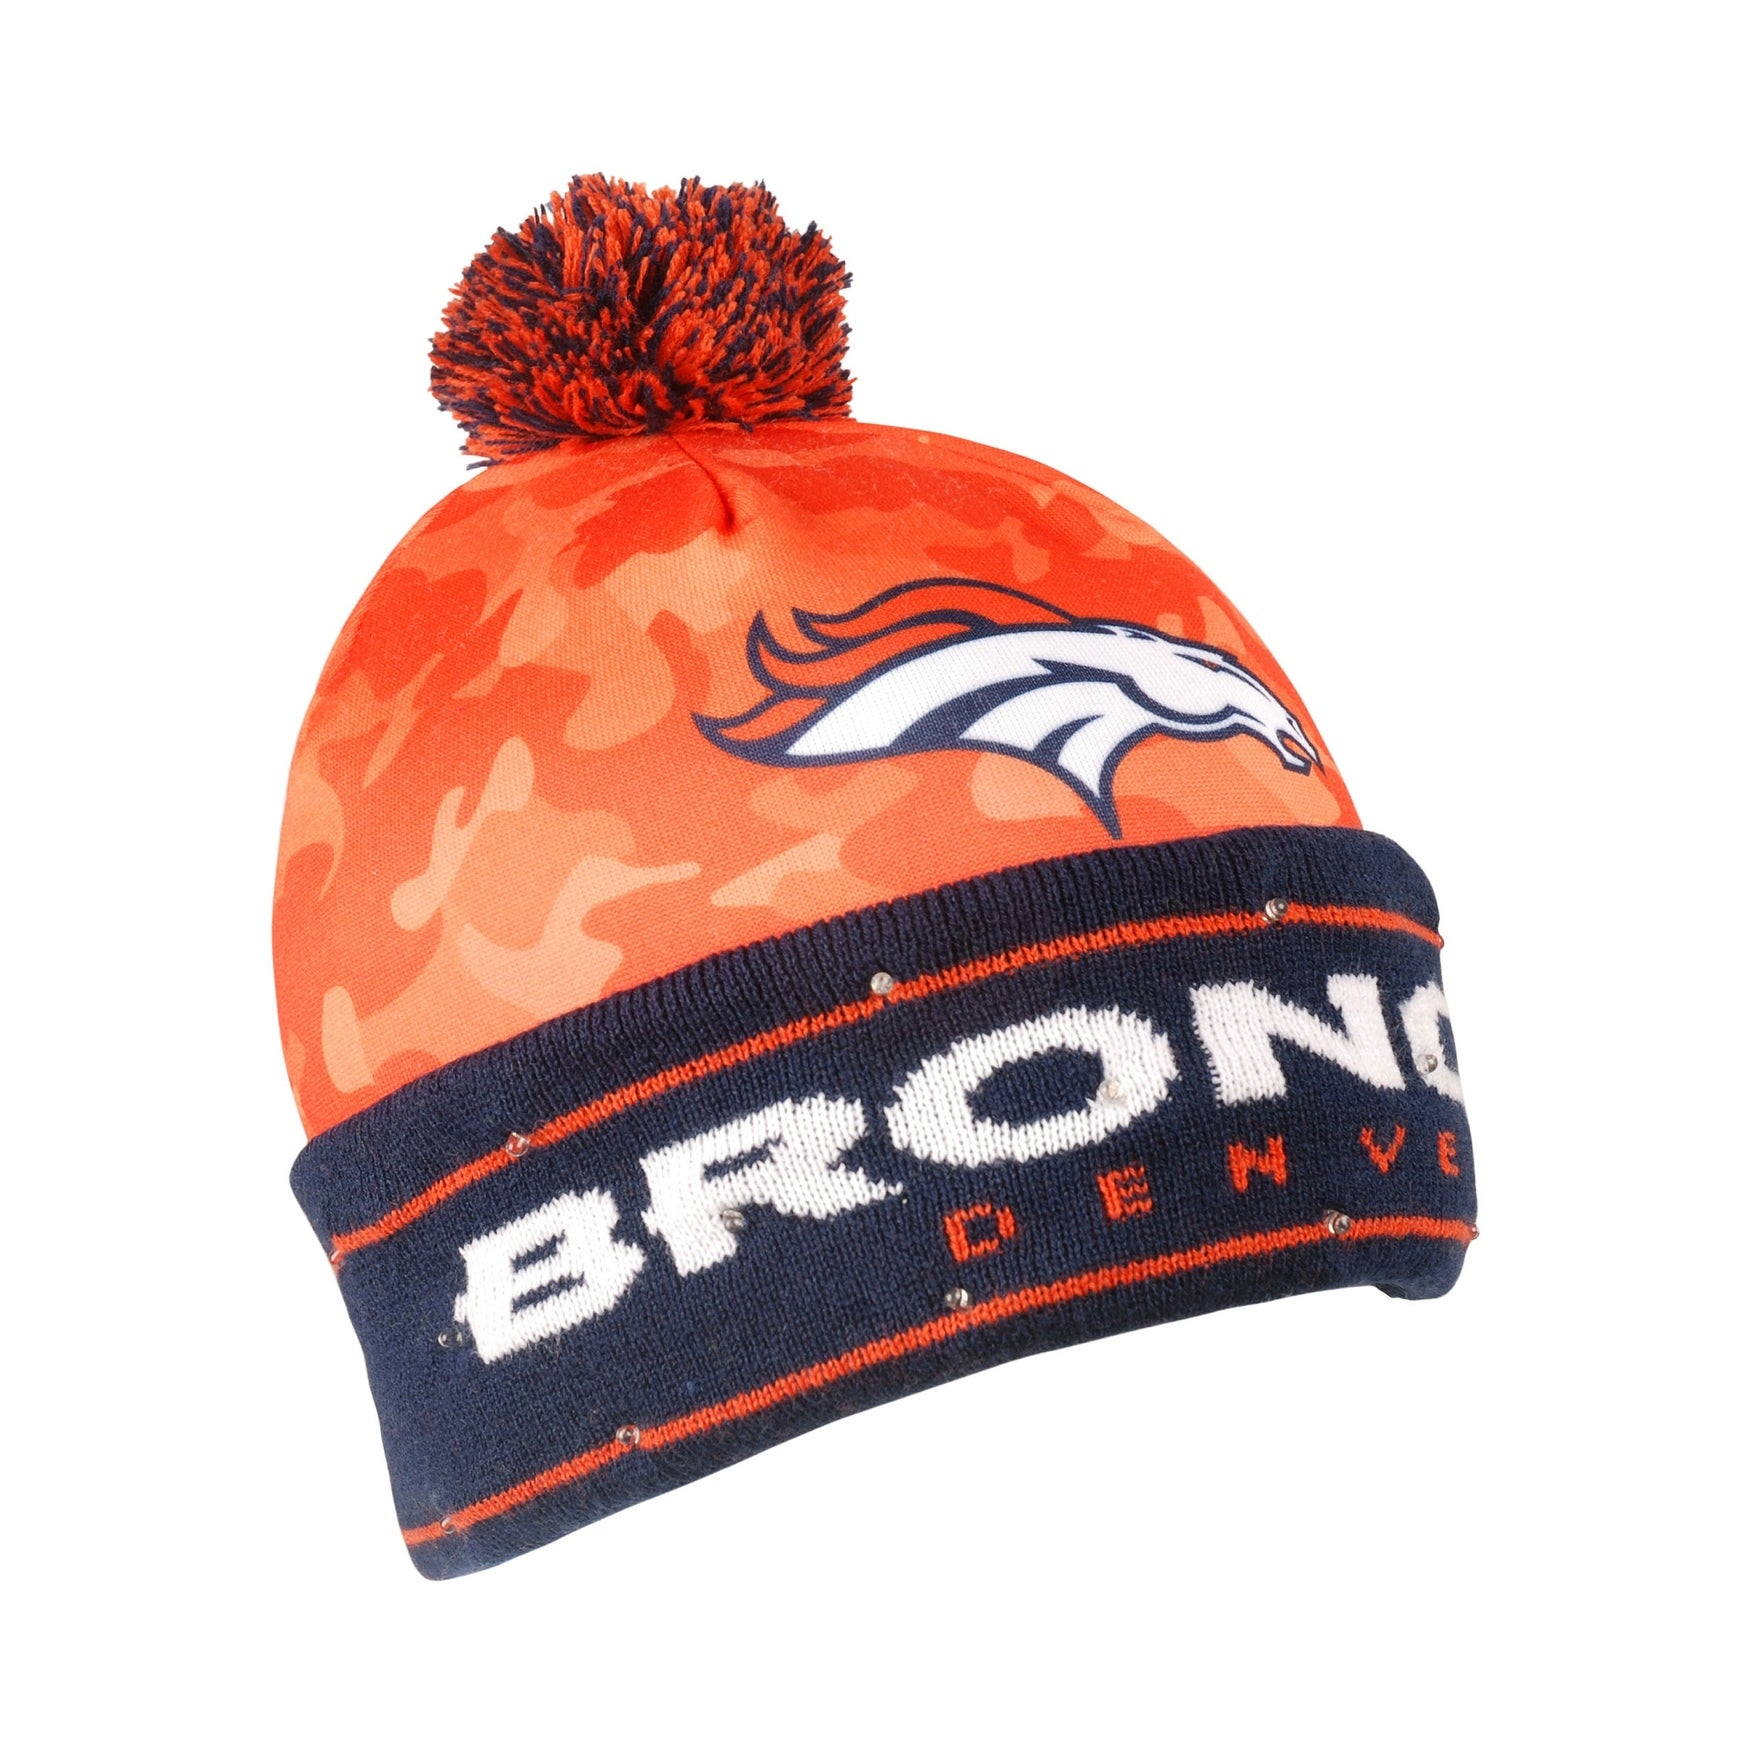 Shop NFL Denver Broncos Camouflage Stocking Hat - Free Shipping On Orders  Over  45 - Overstock.com - 19864794 251910f2cf4